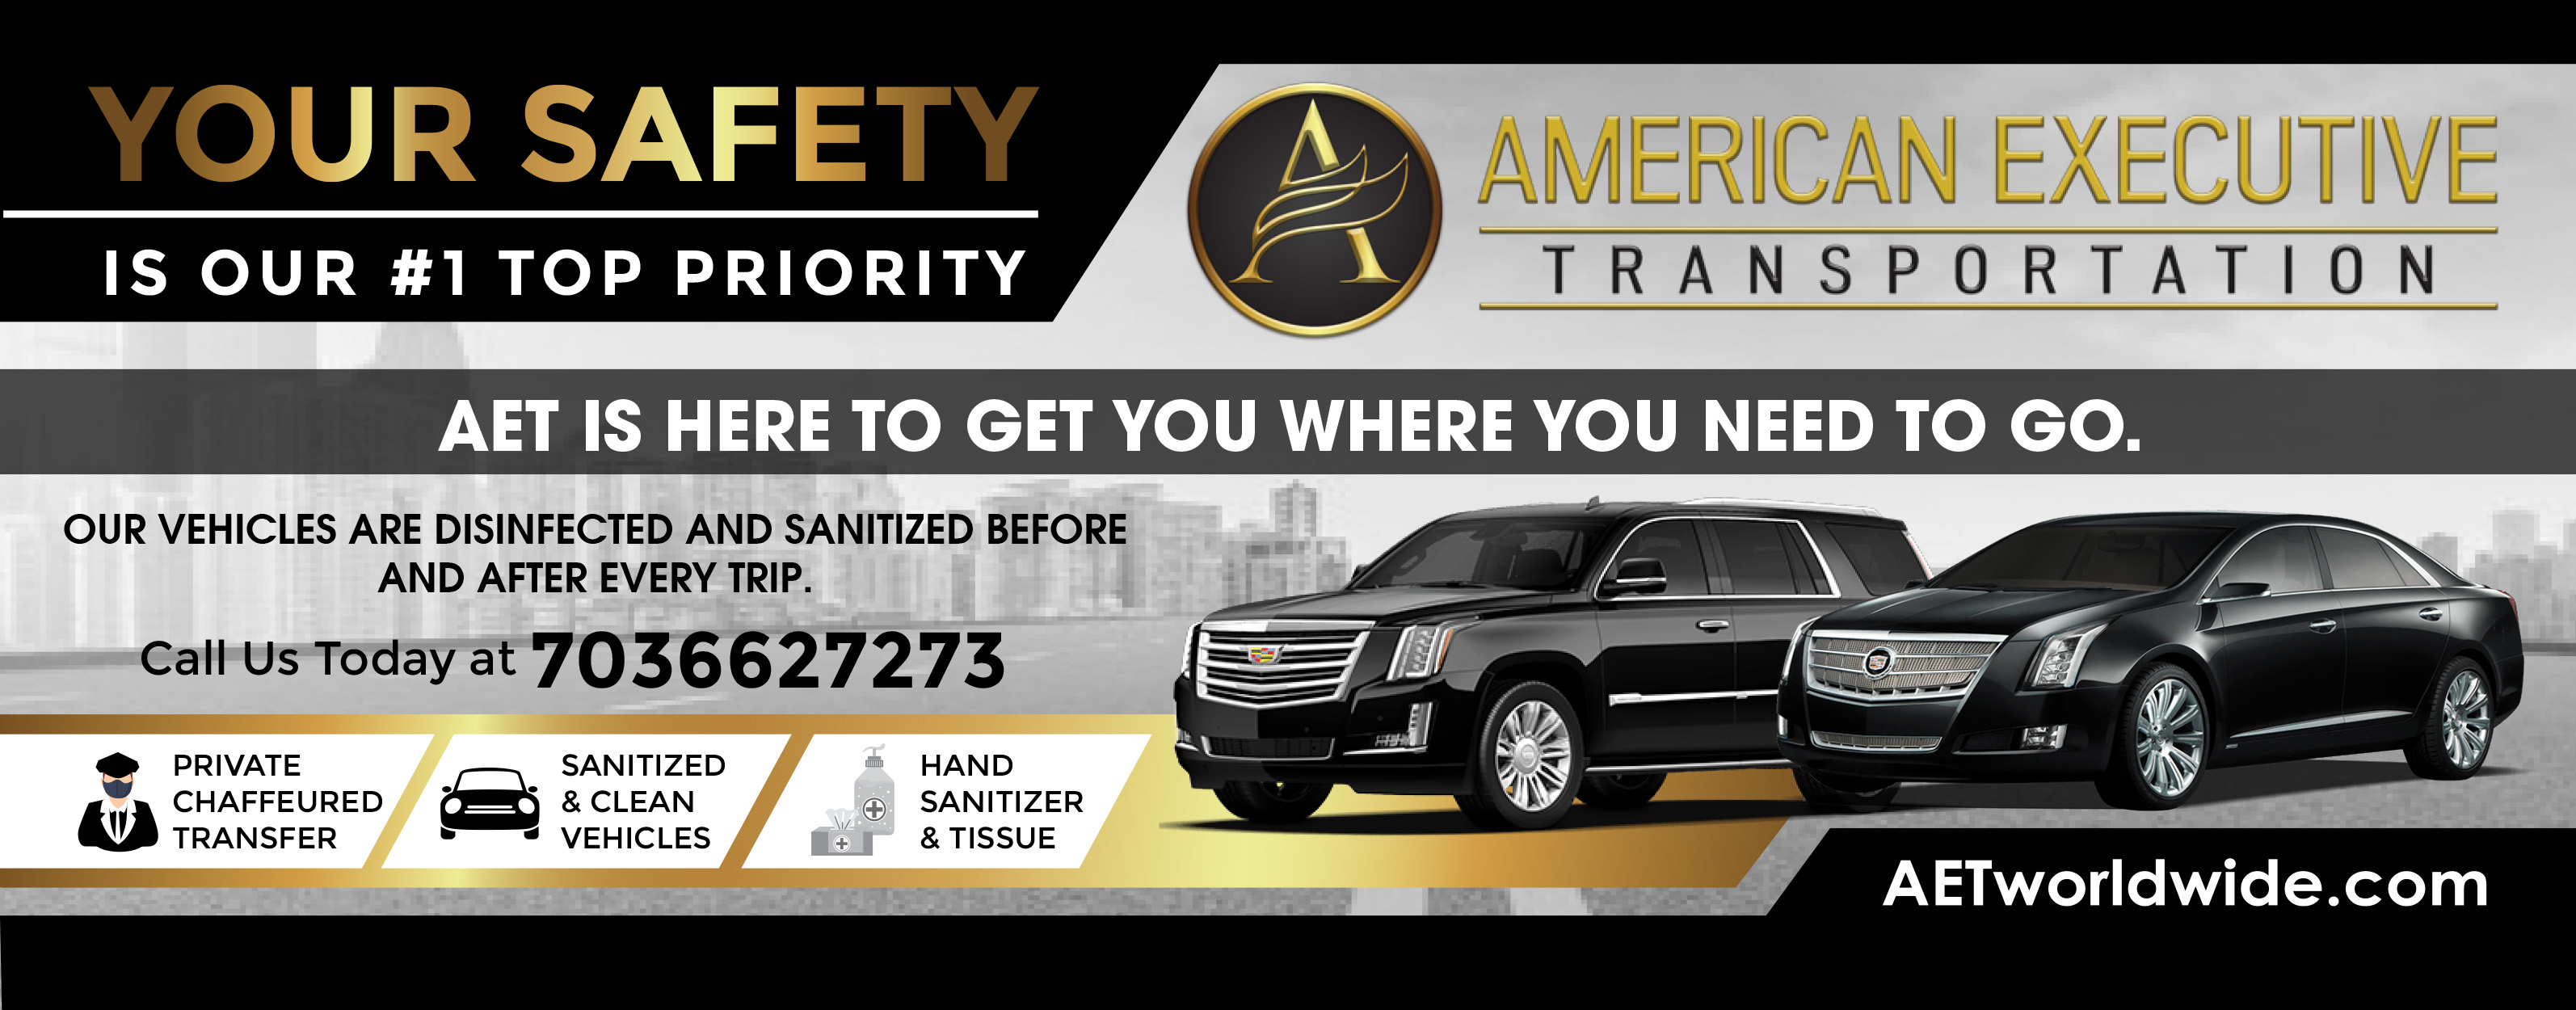 AET Worldwide Number 1 Priority Safety